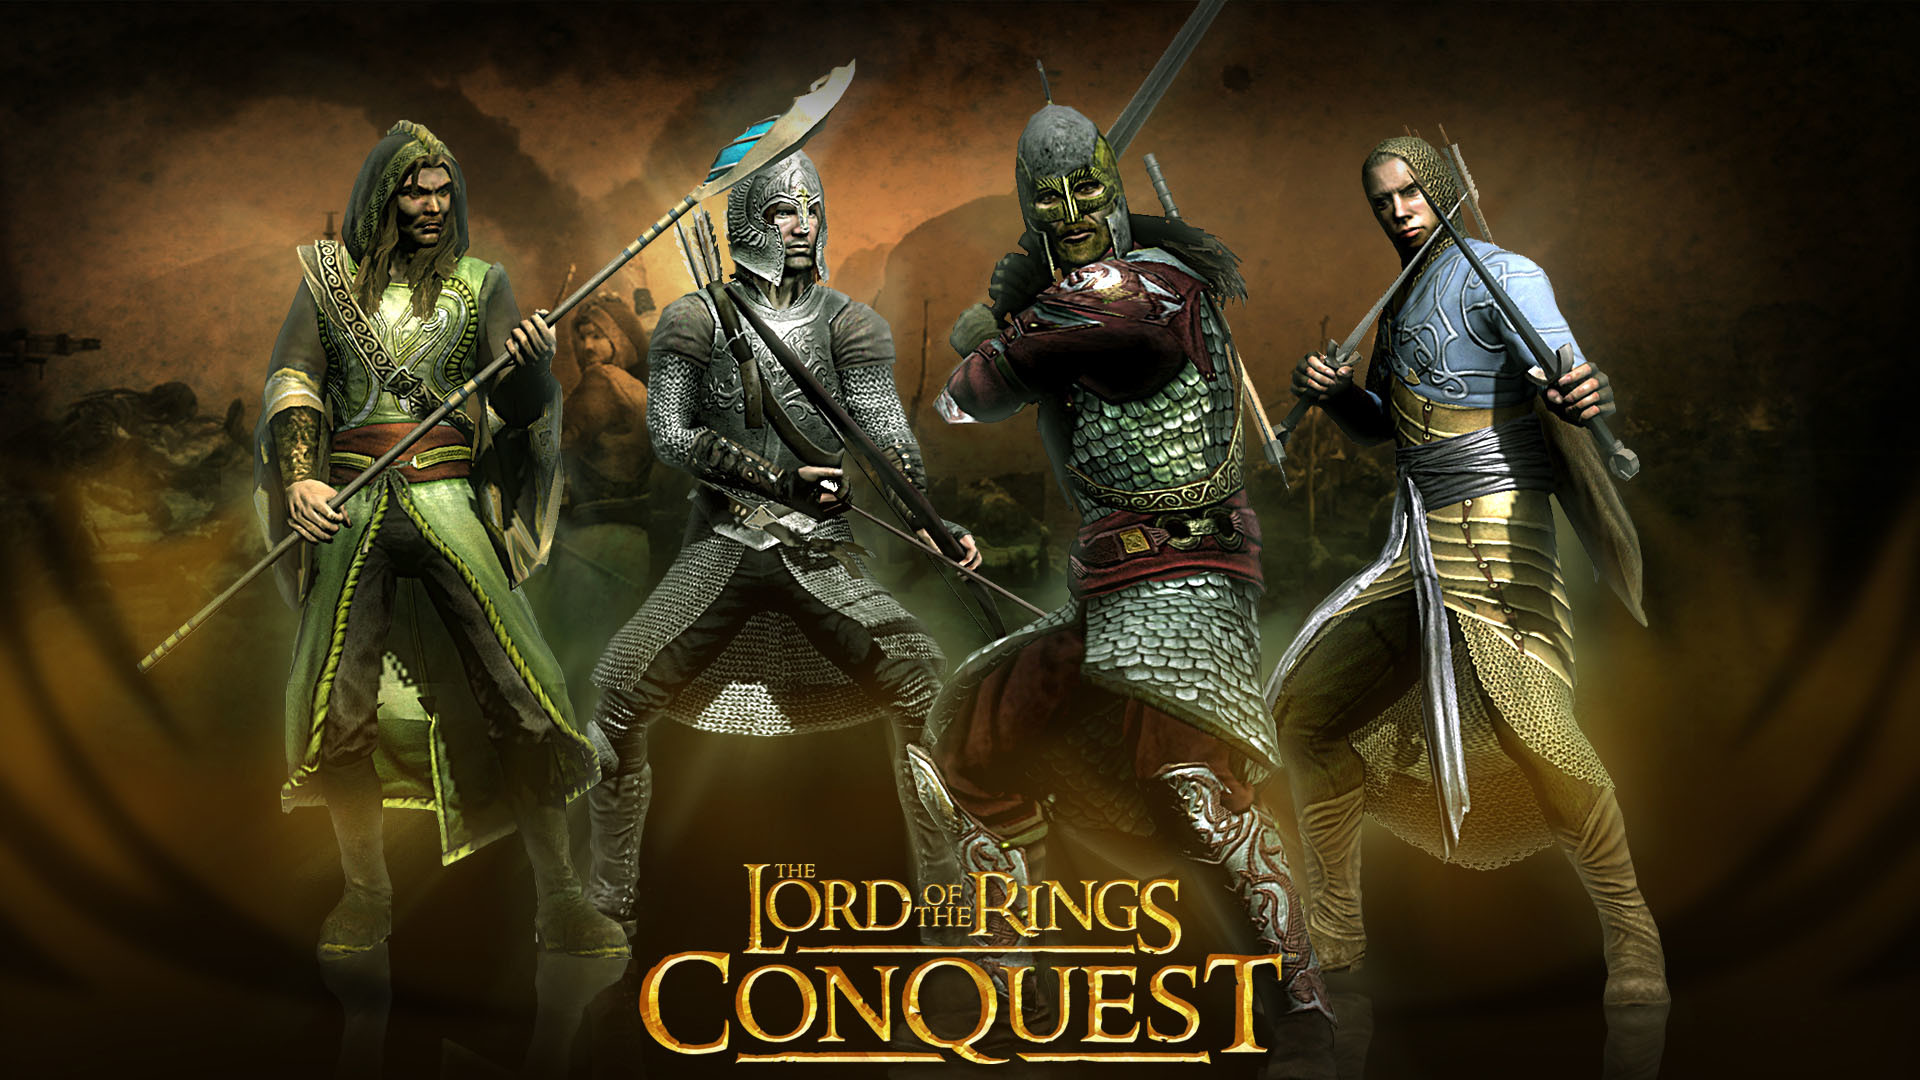 Res: 1920x1080, Lord-of-the-rings-conquest-wallpaper-hd-1.jpg